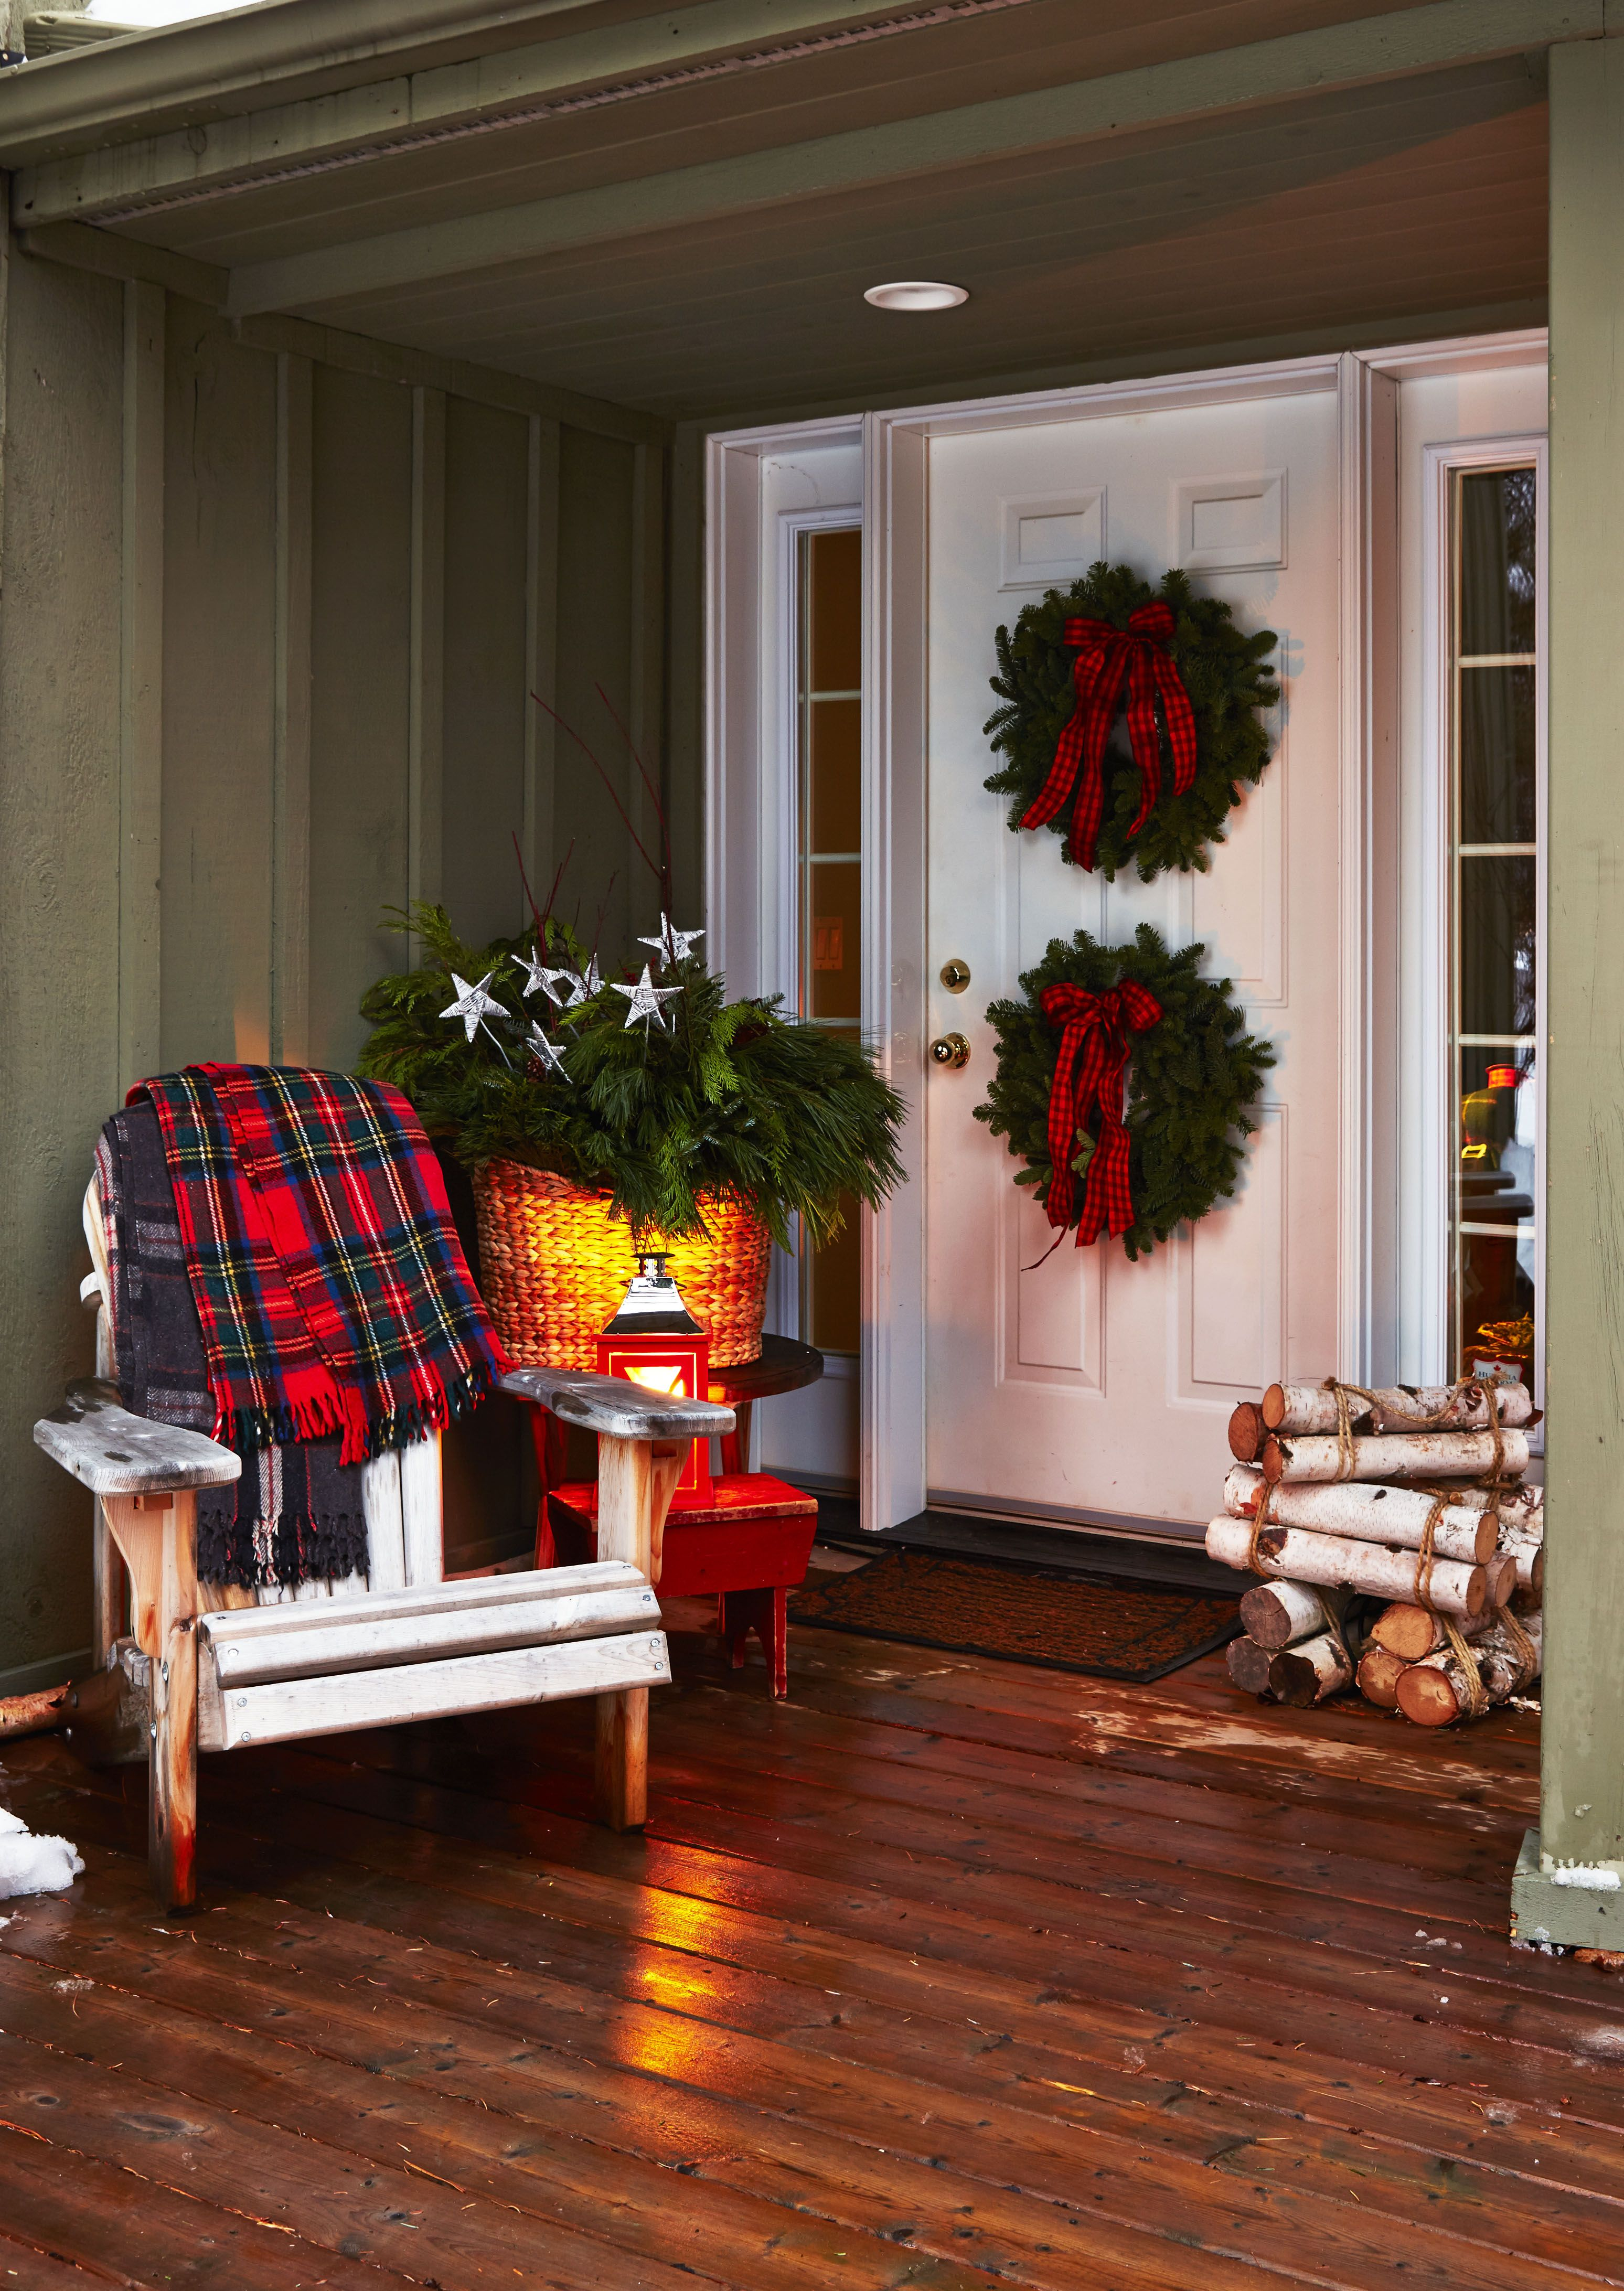 Christmas decorated rooms - 80 Christmas Decorating Ideas For A Joyful Holiday Home